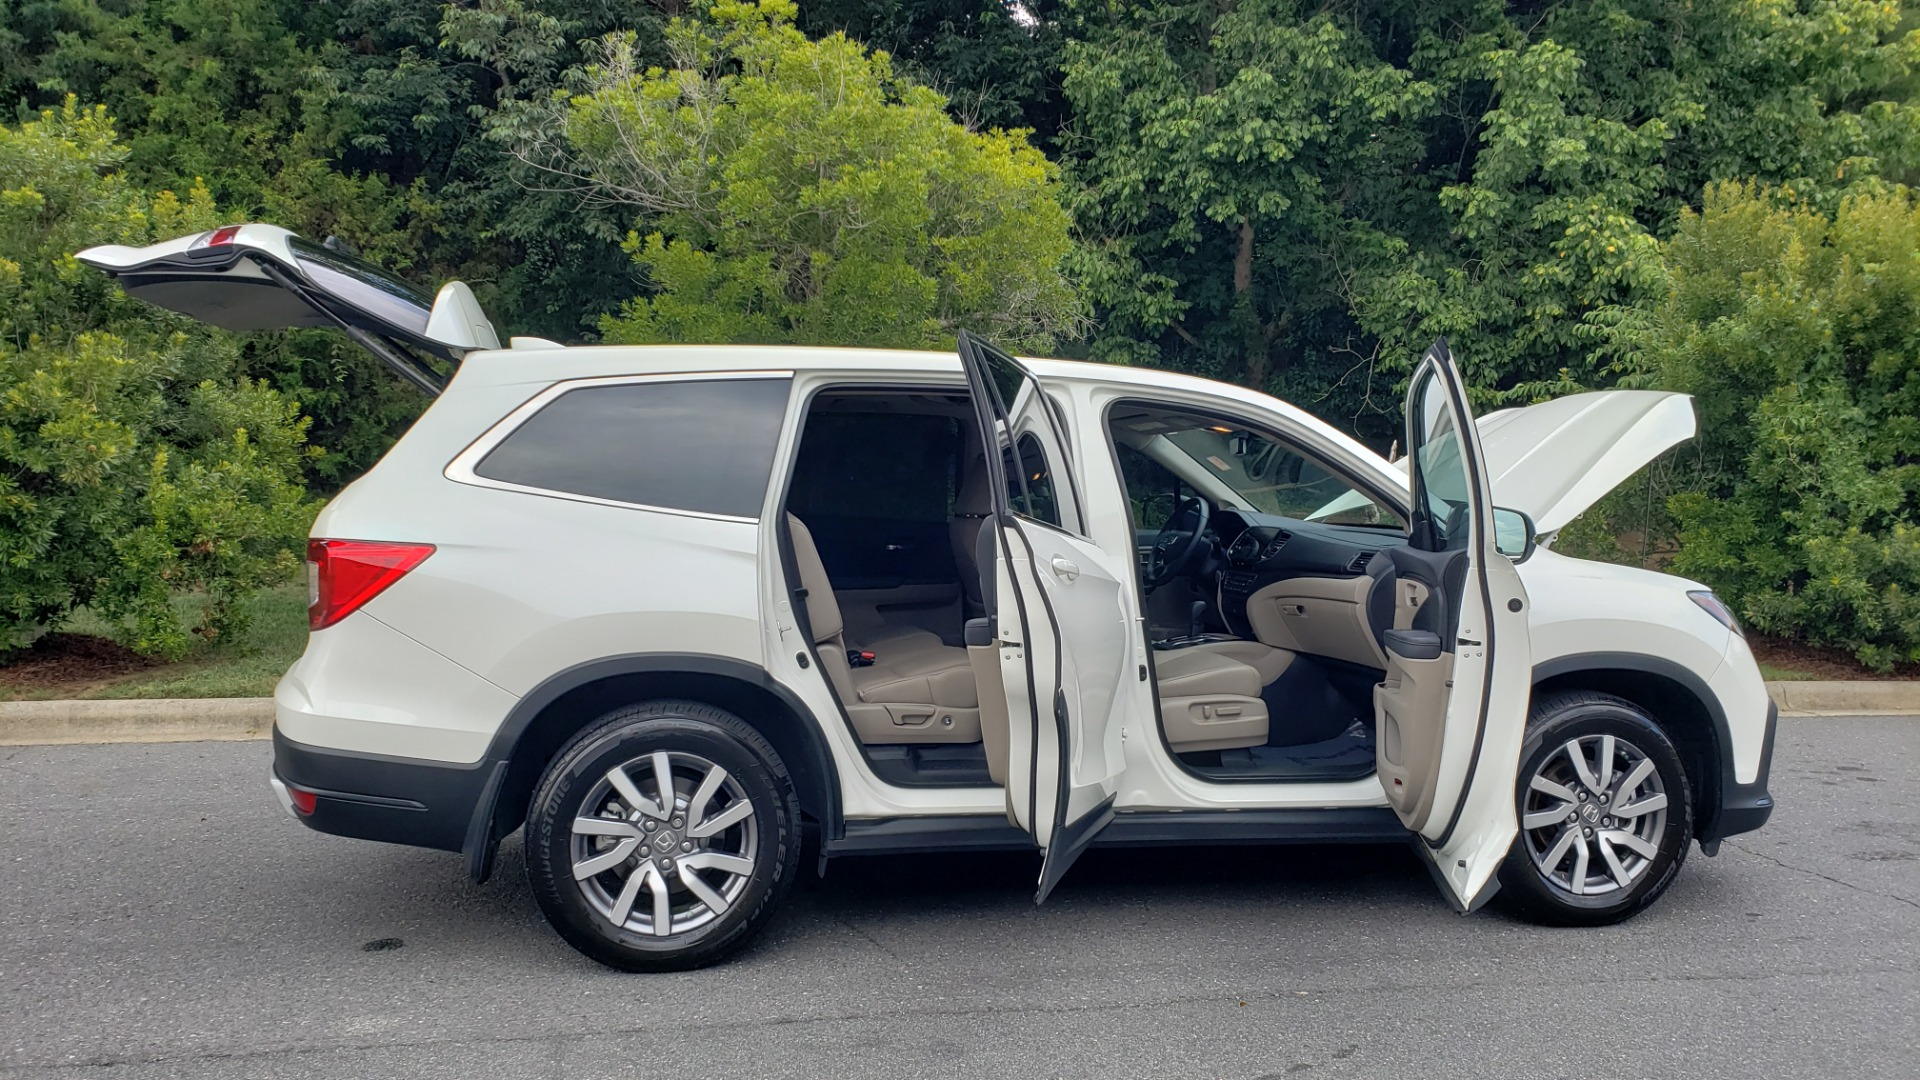 Used 2019 Honda PILOT EX-L / V6 / NAV / SUNROOF / DVD / 3-ROW / REARVIEW for sale Sold at Formula Imports in Charlotte NC 28227 9